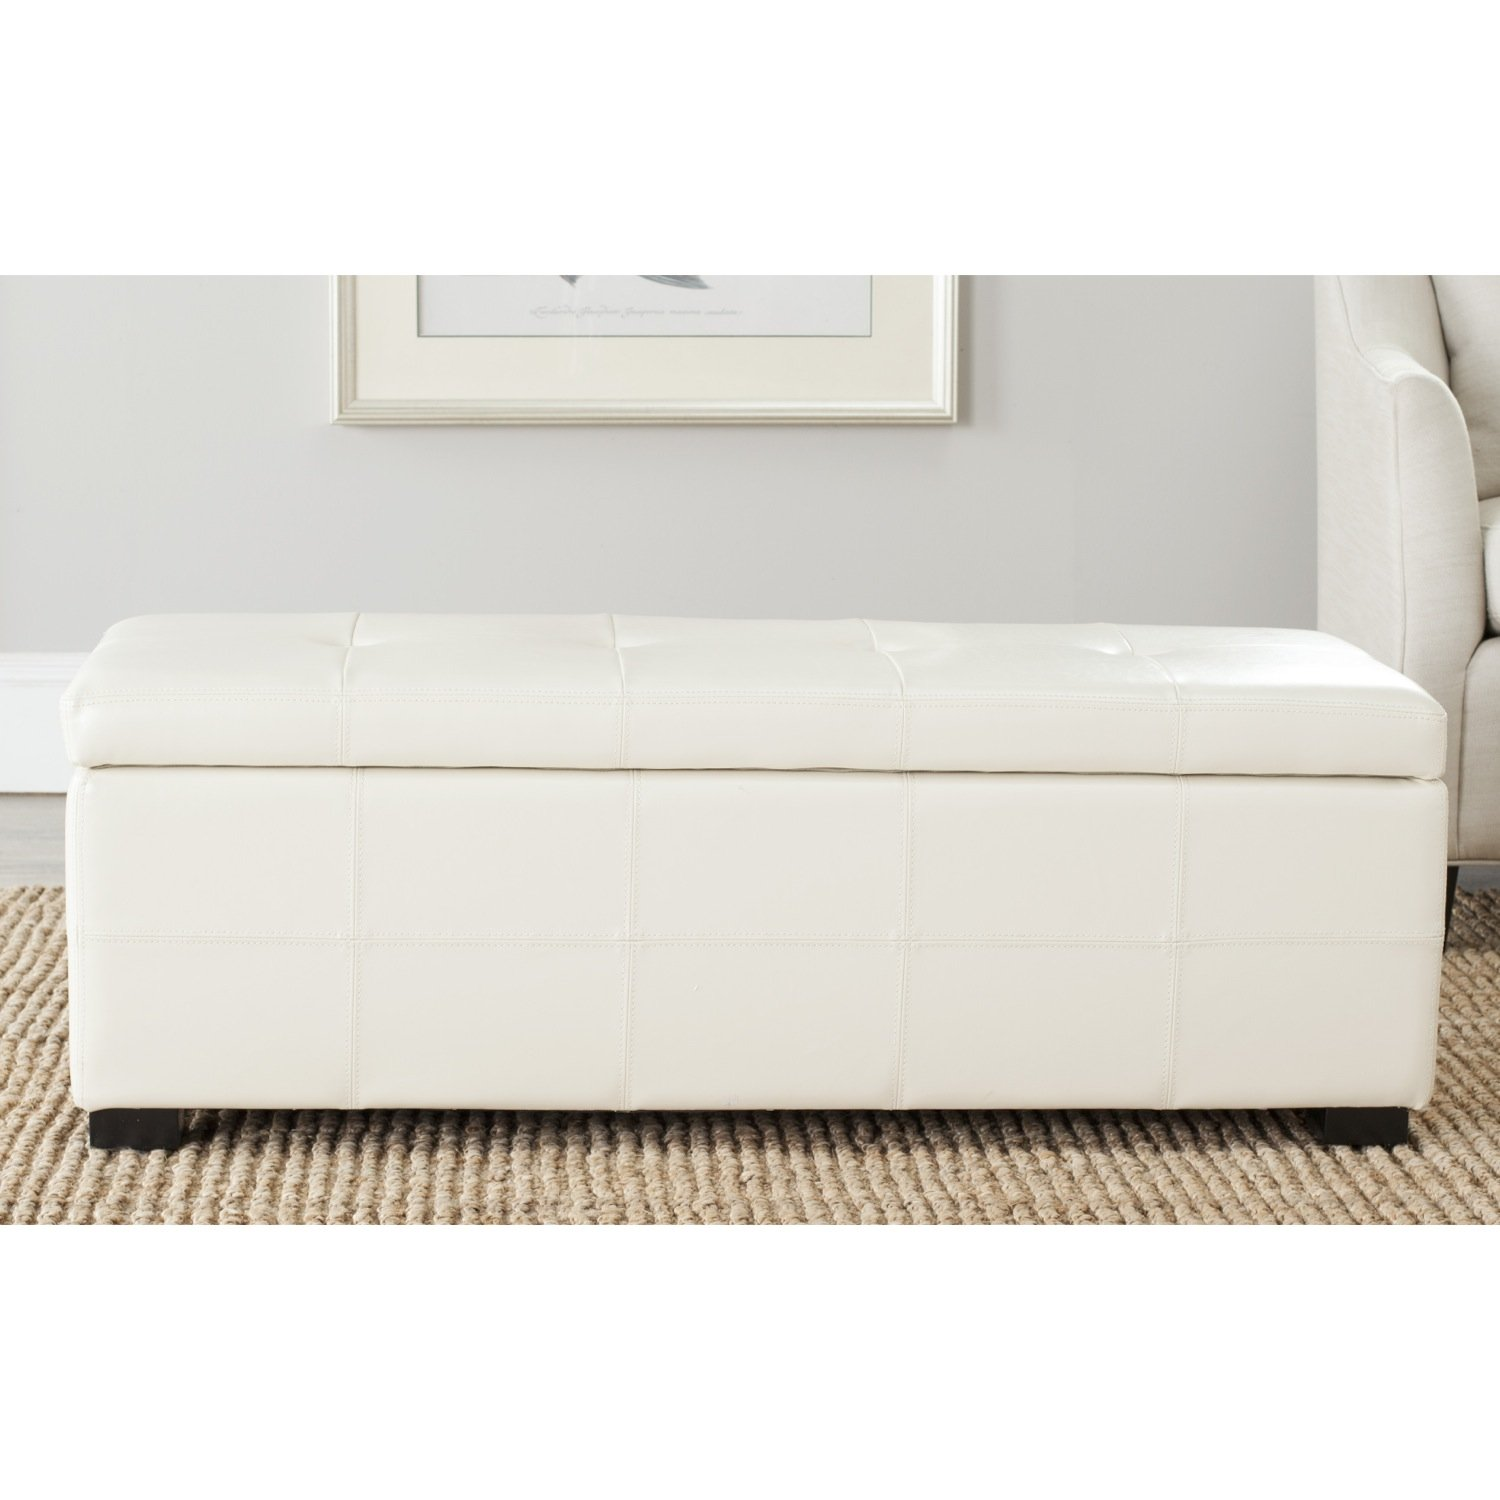 amazoncom safavieh hudson collection noho tufted cream leather large storage bench kitchen u0026 dining